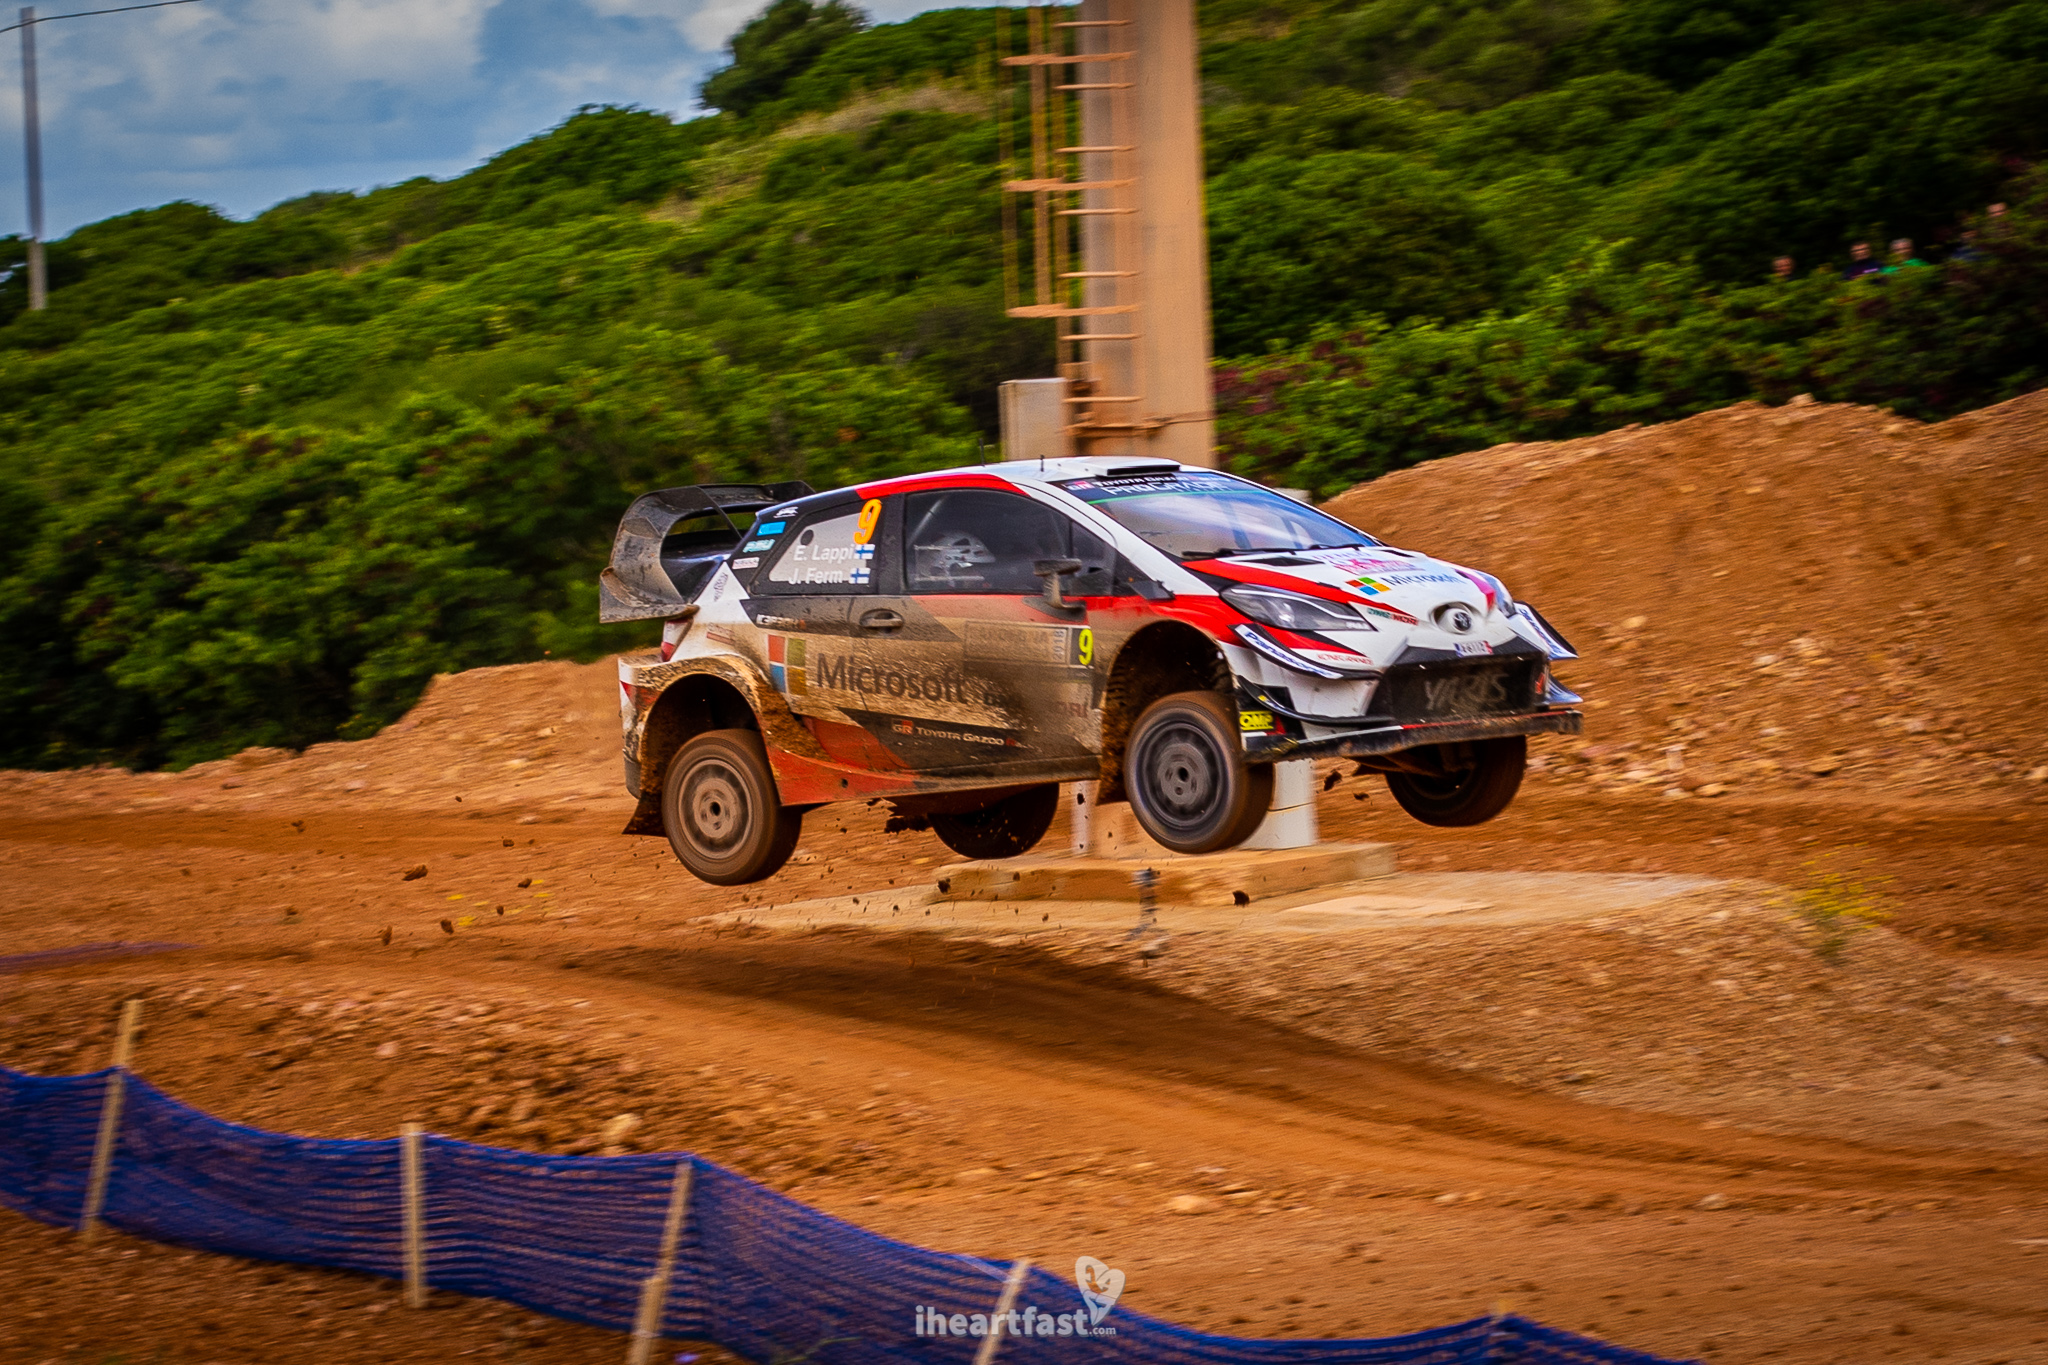 Lappi sending it over a jump